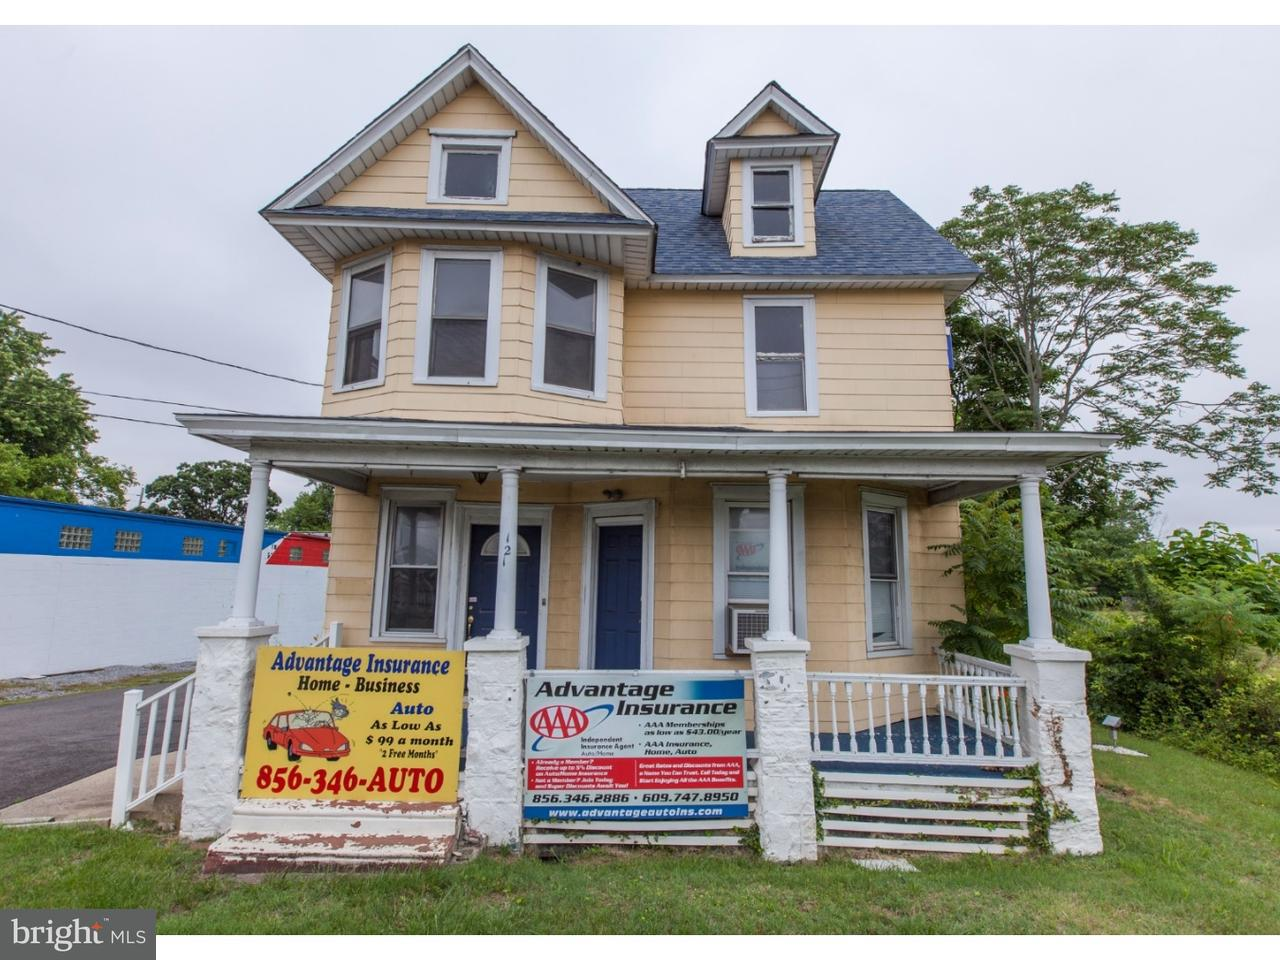 Duplex for Sale at 121 S WHITE HORSE PIKE S Magnolia, New Jersey 08049 United States